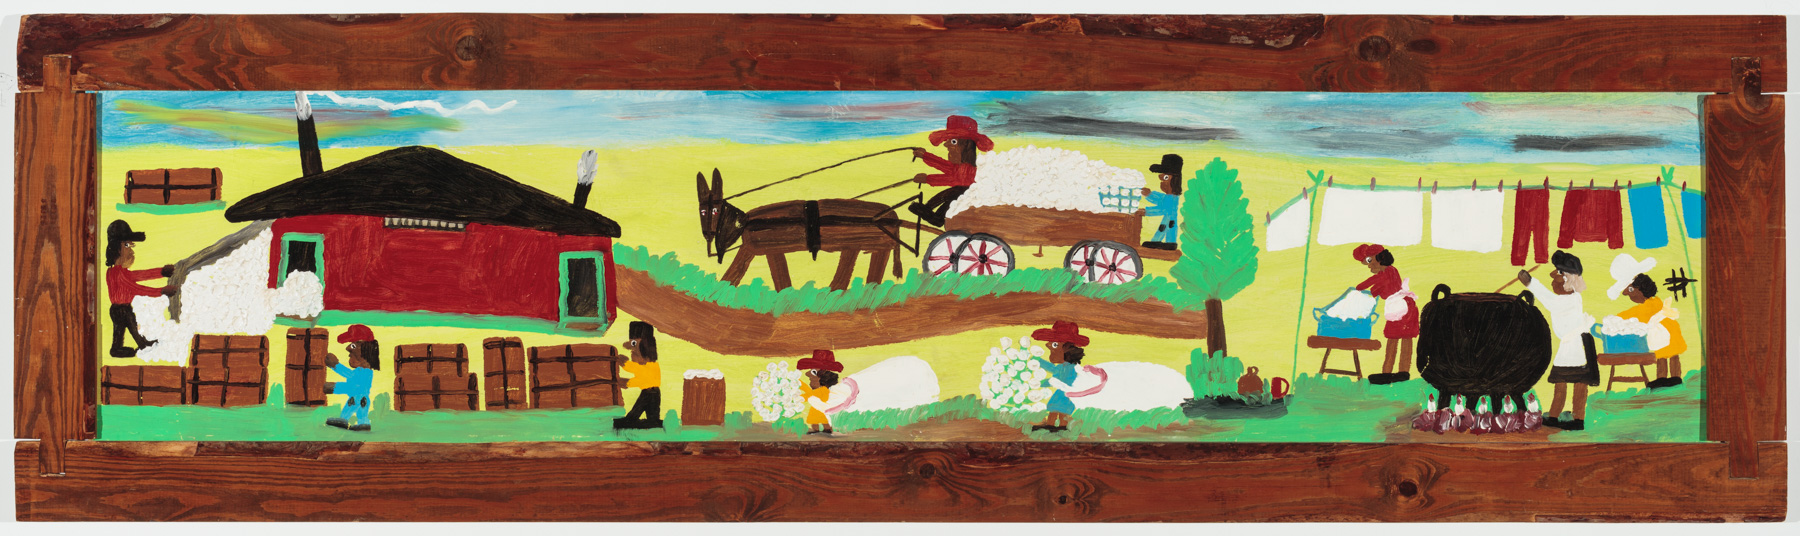 Clementine Hunter painting with scenes of plantation life